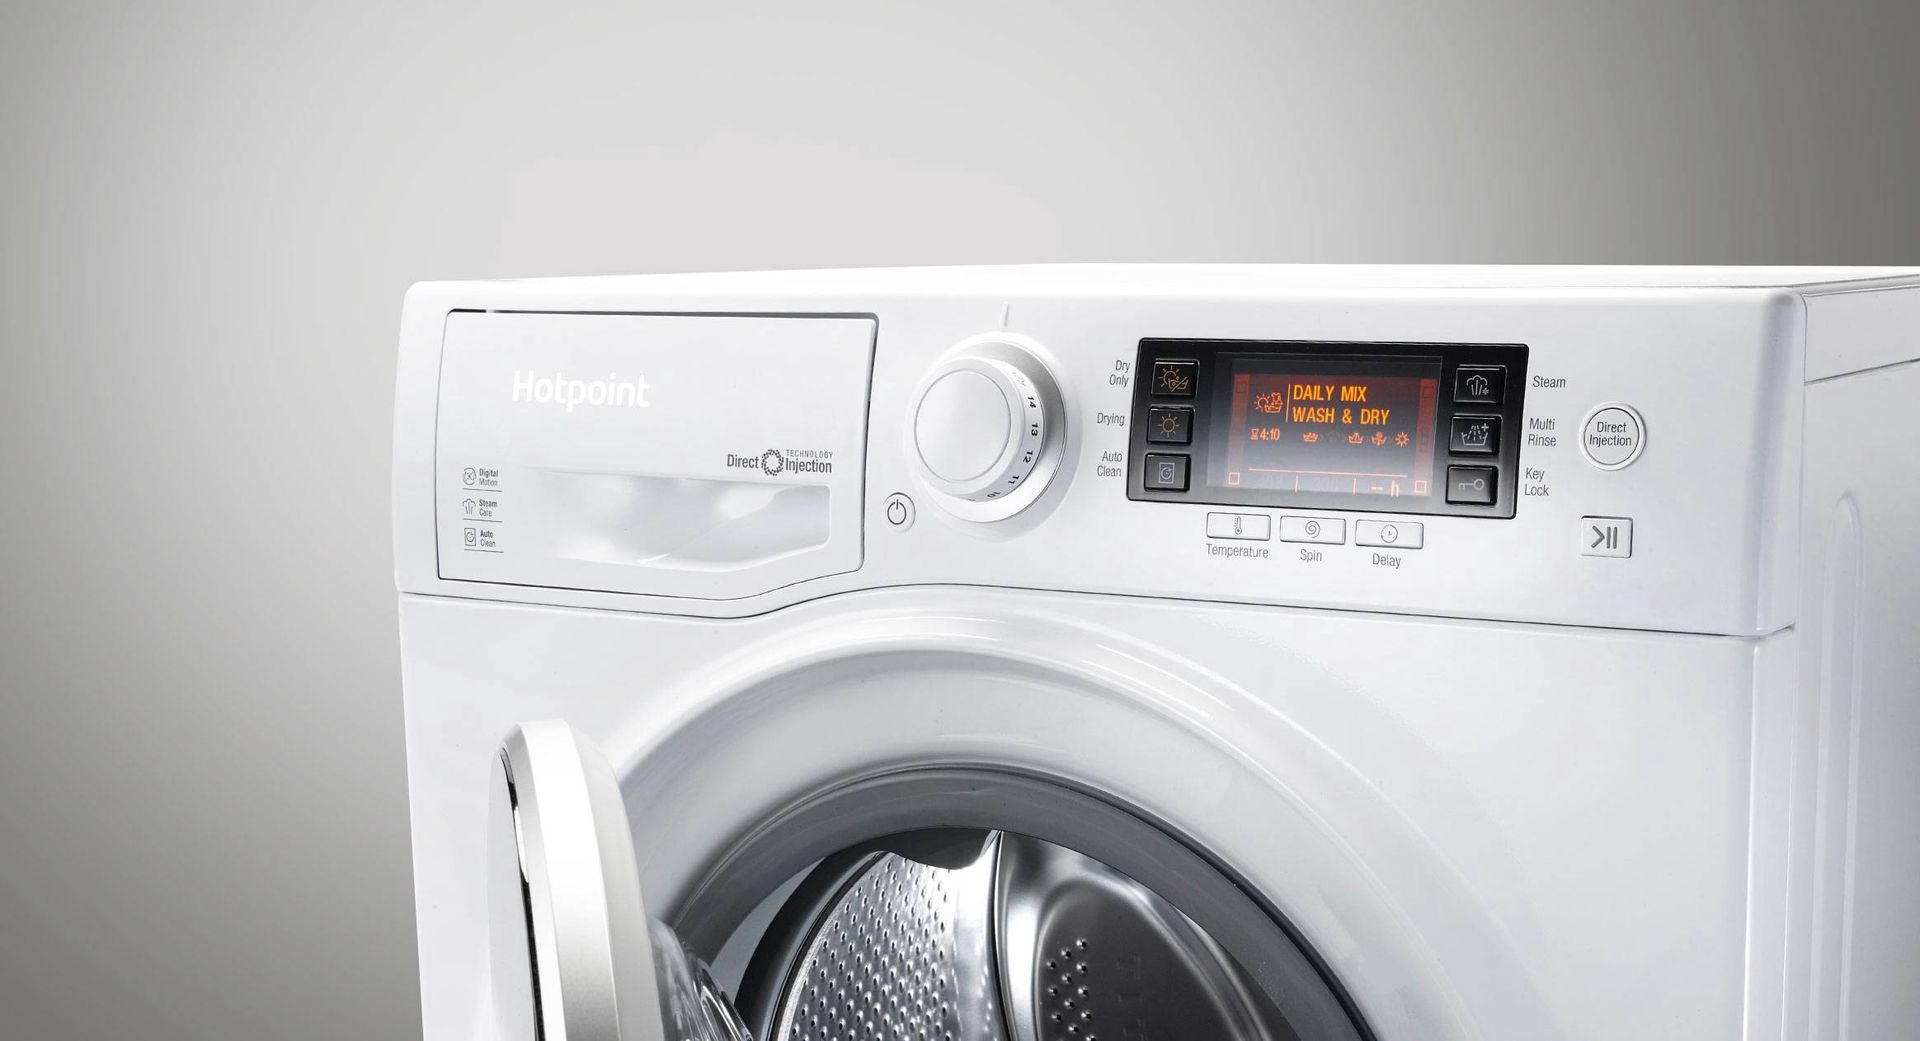 If you currently have dryer at your house, you could too get the washer to take complete use of the smart functions that drop by default